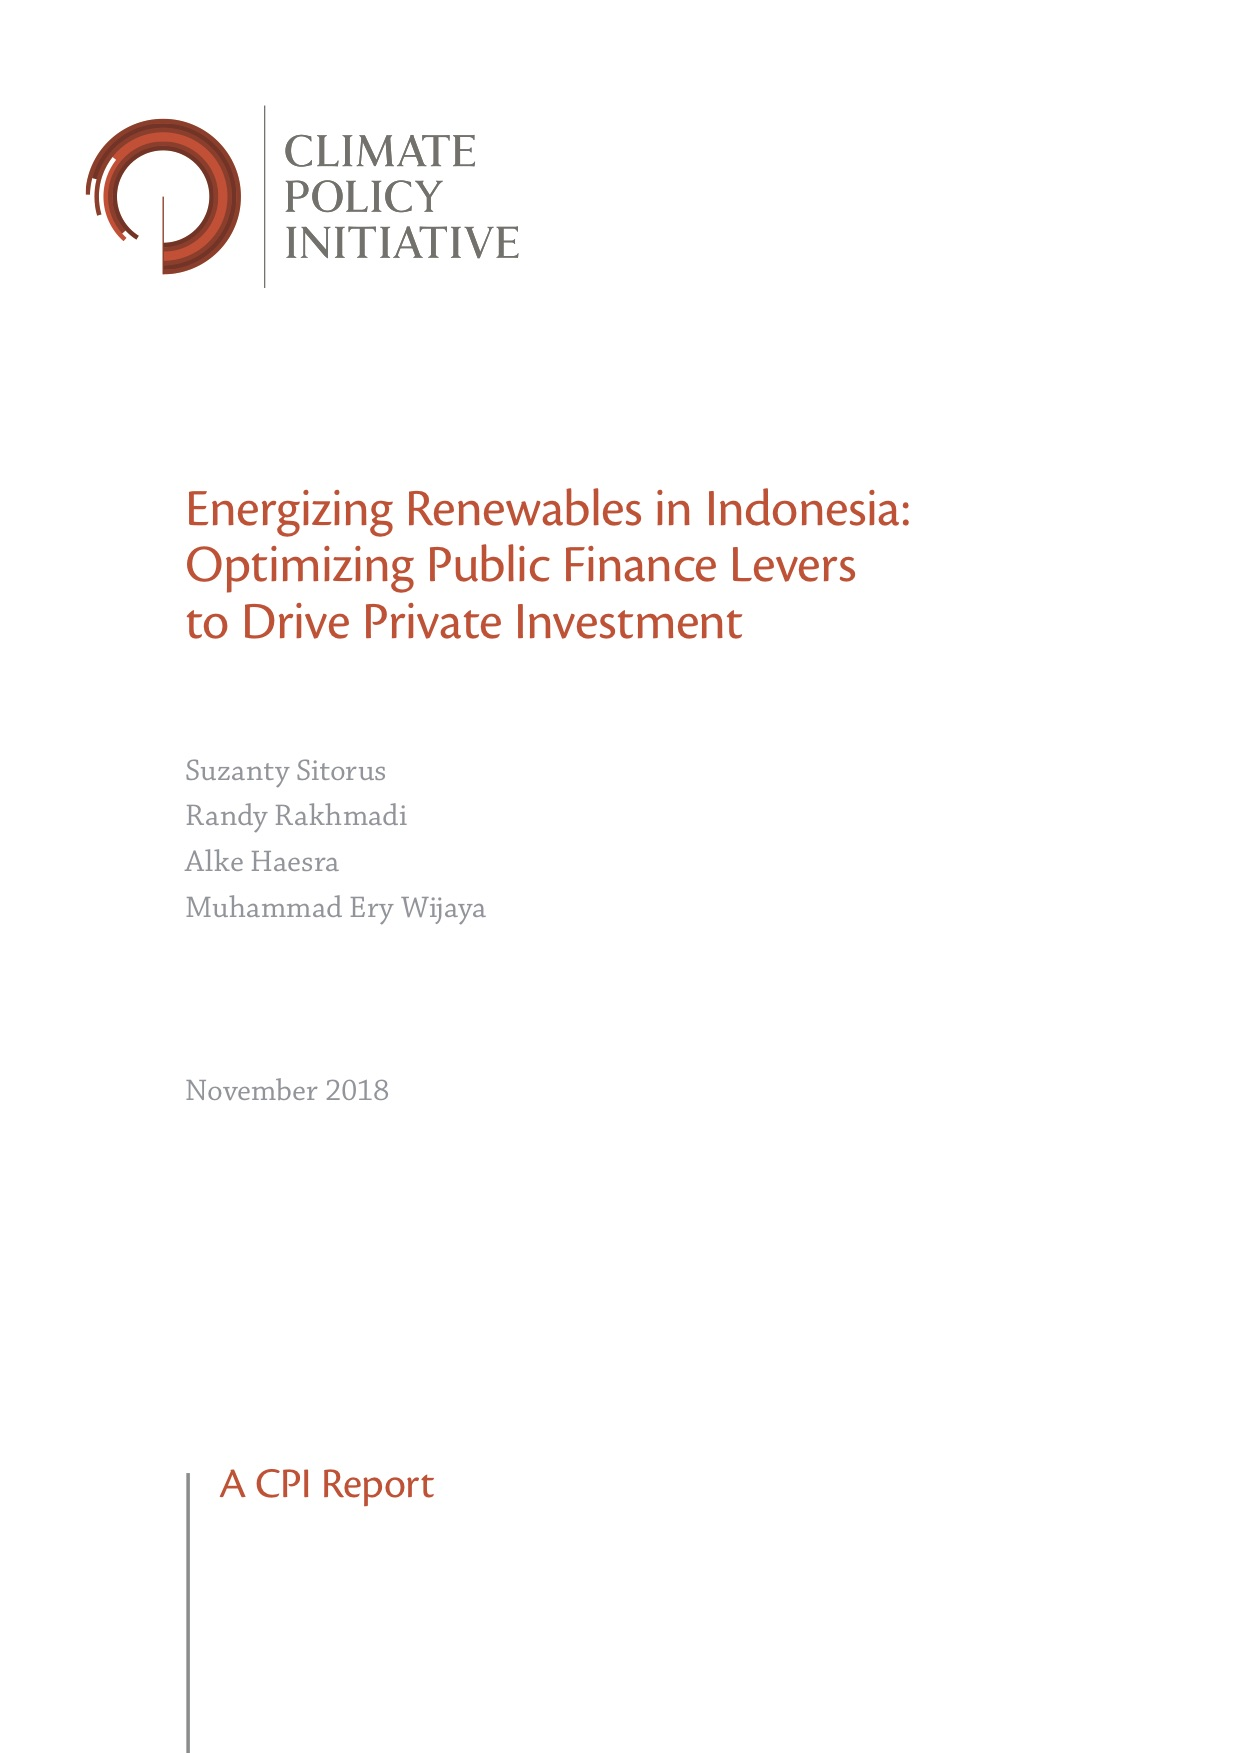 Energizing Renewables in Indonesia: Optimizing Public Finance Levers to Drive Private Investment